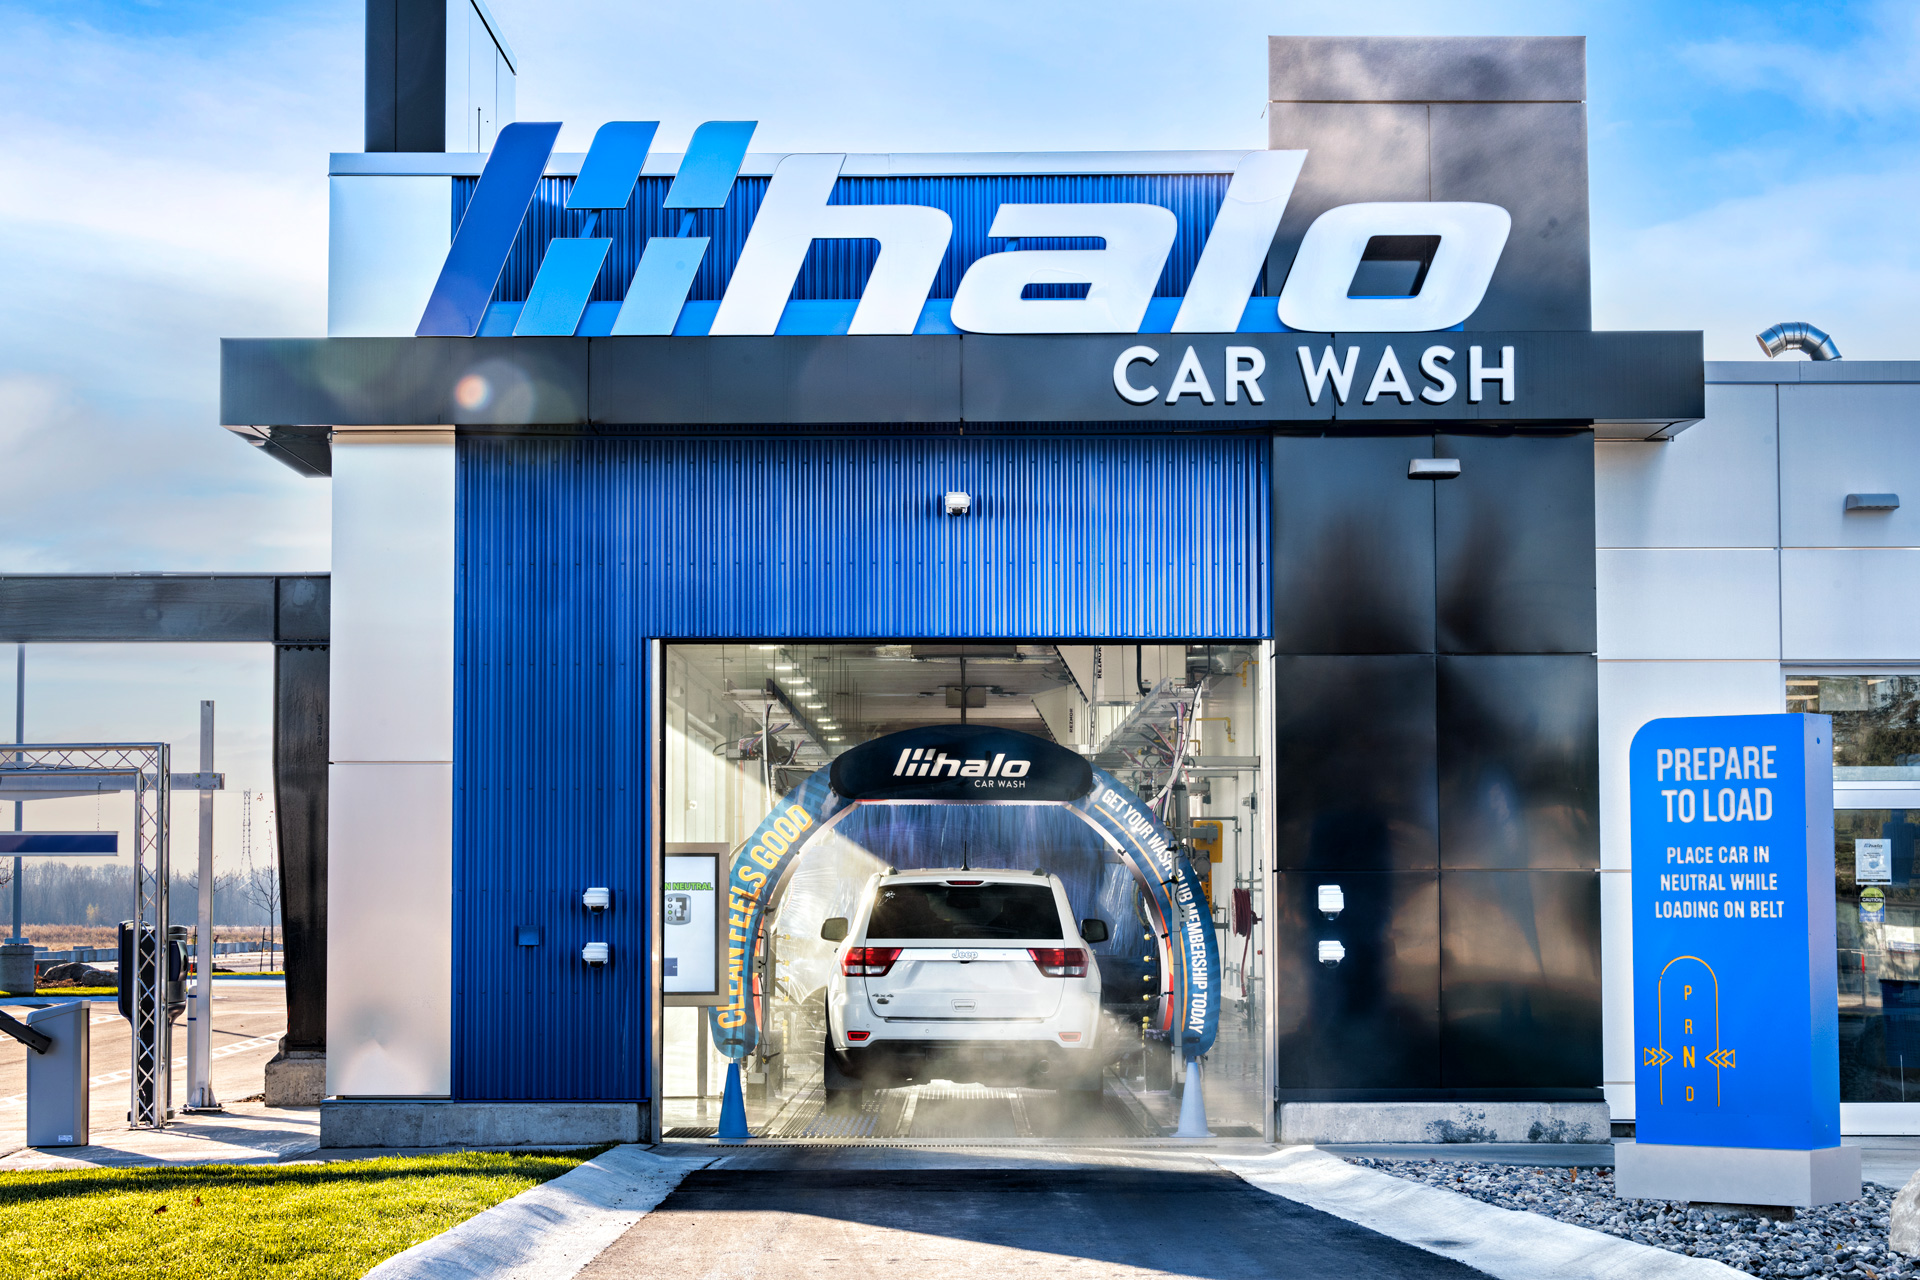 Halo Car Wash